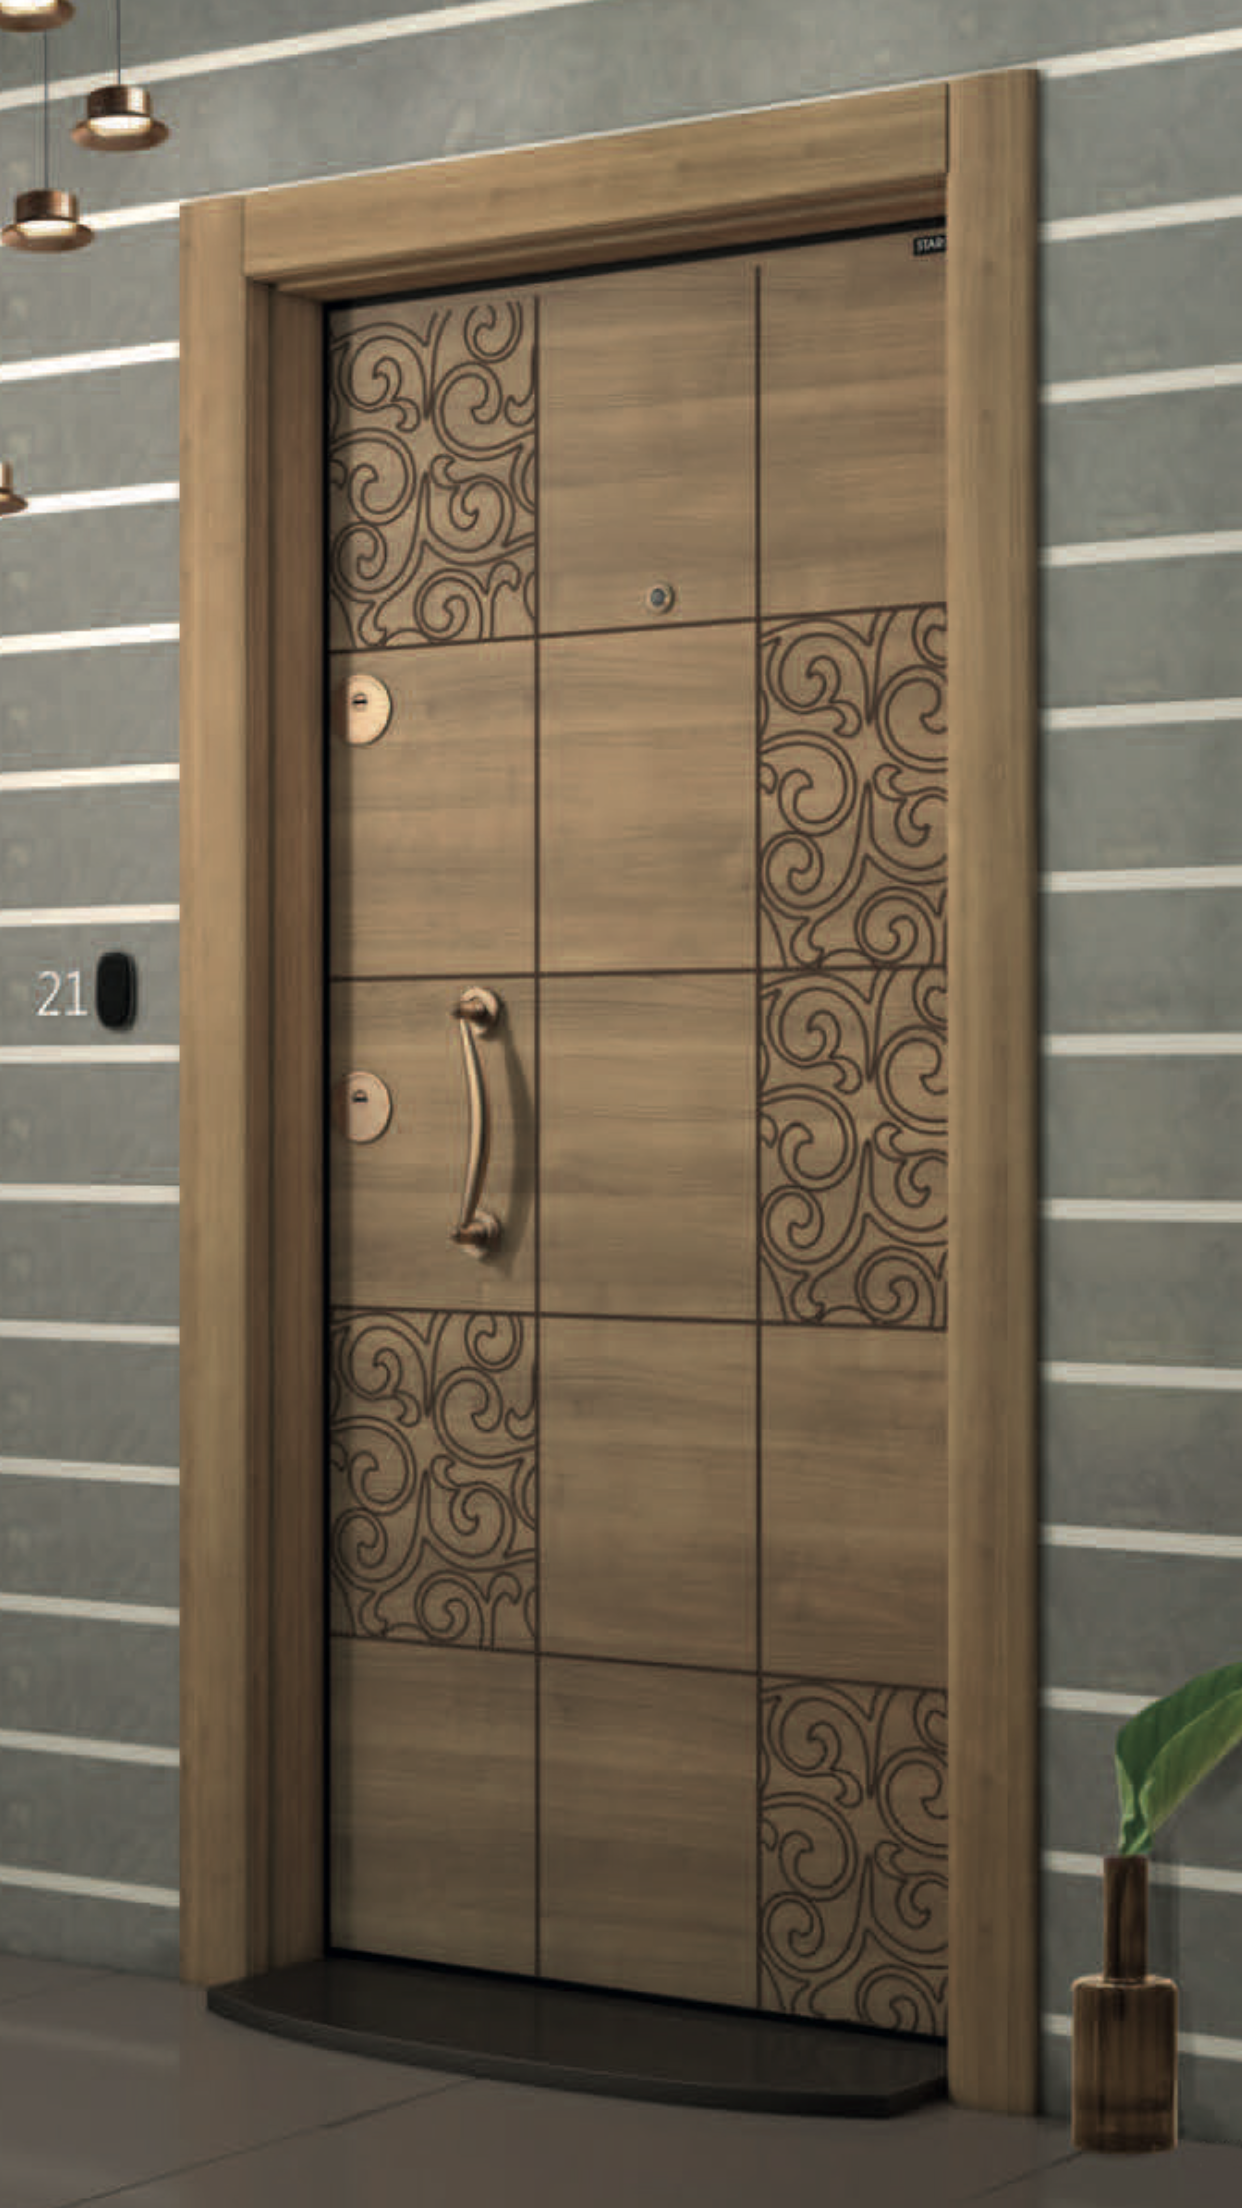 Door Designs Door Design Interior Wooden Door Design Flush